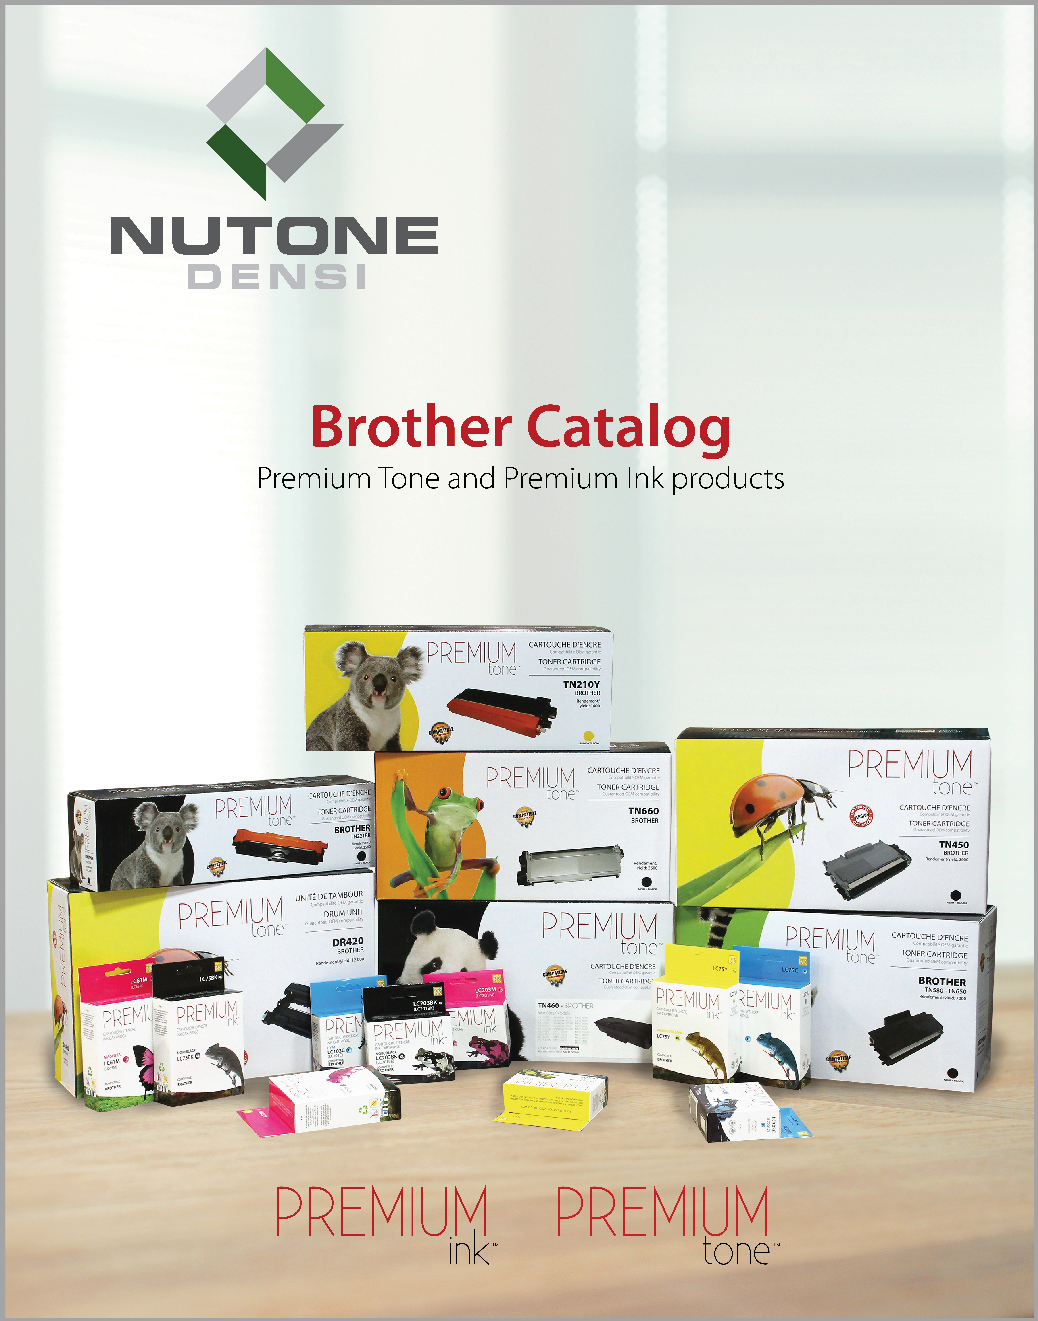 Couverture_Catalogue_Brother_ANG-01-01-01